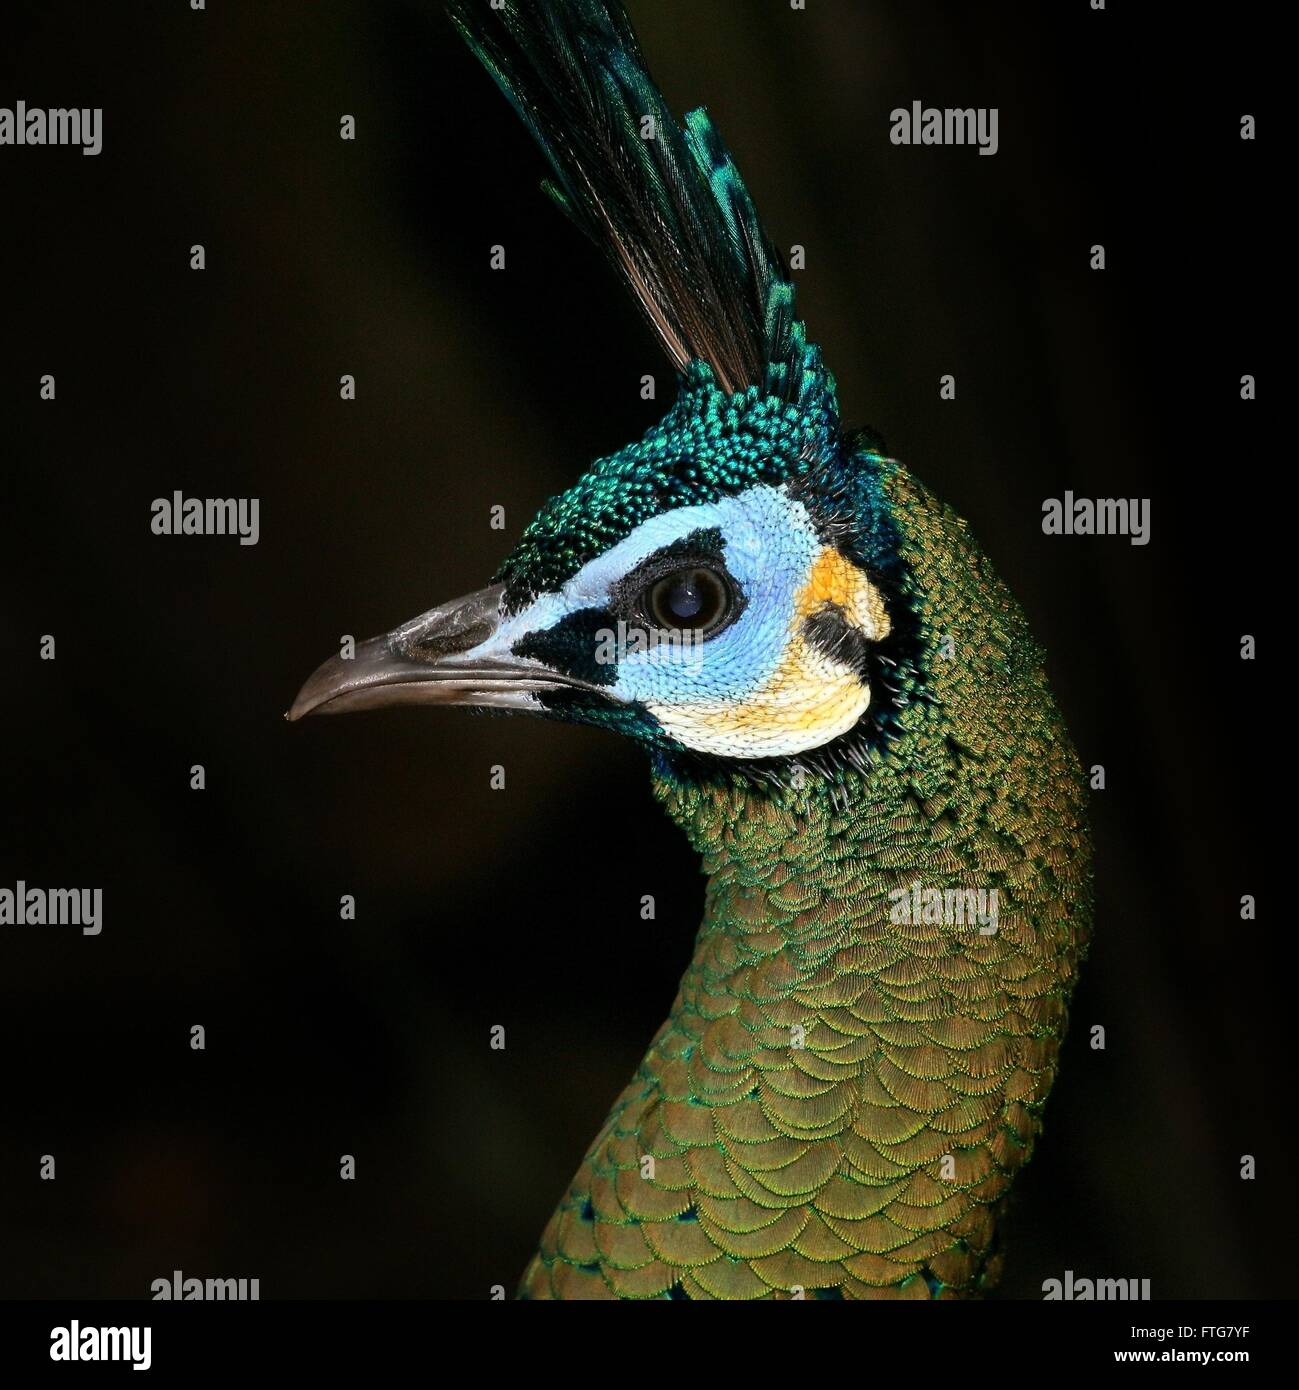 Asian Green Peacock or Java peafowl (Pavo muticus), closeup of the head, seen in profile - Stock Image